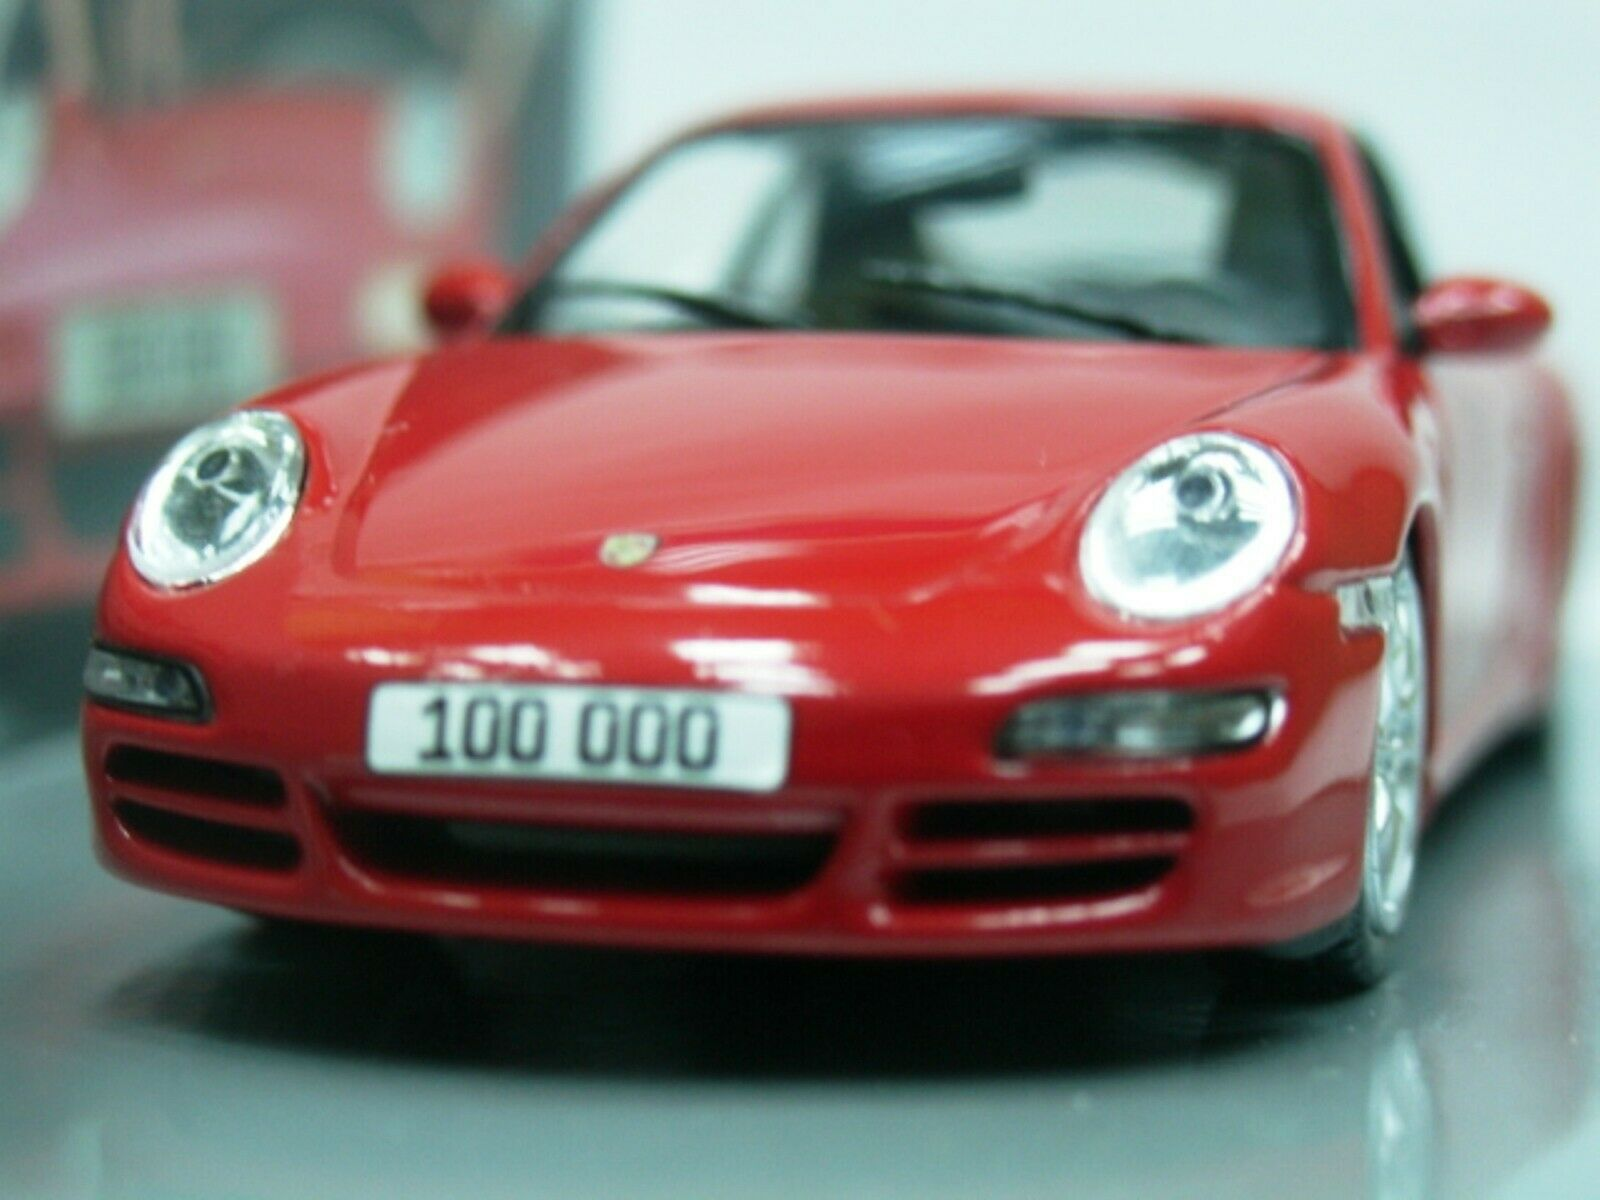 WOW EXTREMELY RARE Porsche 997 911 2007 Carrera S Red 1 43 Minichamps-GT2-Spark